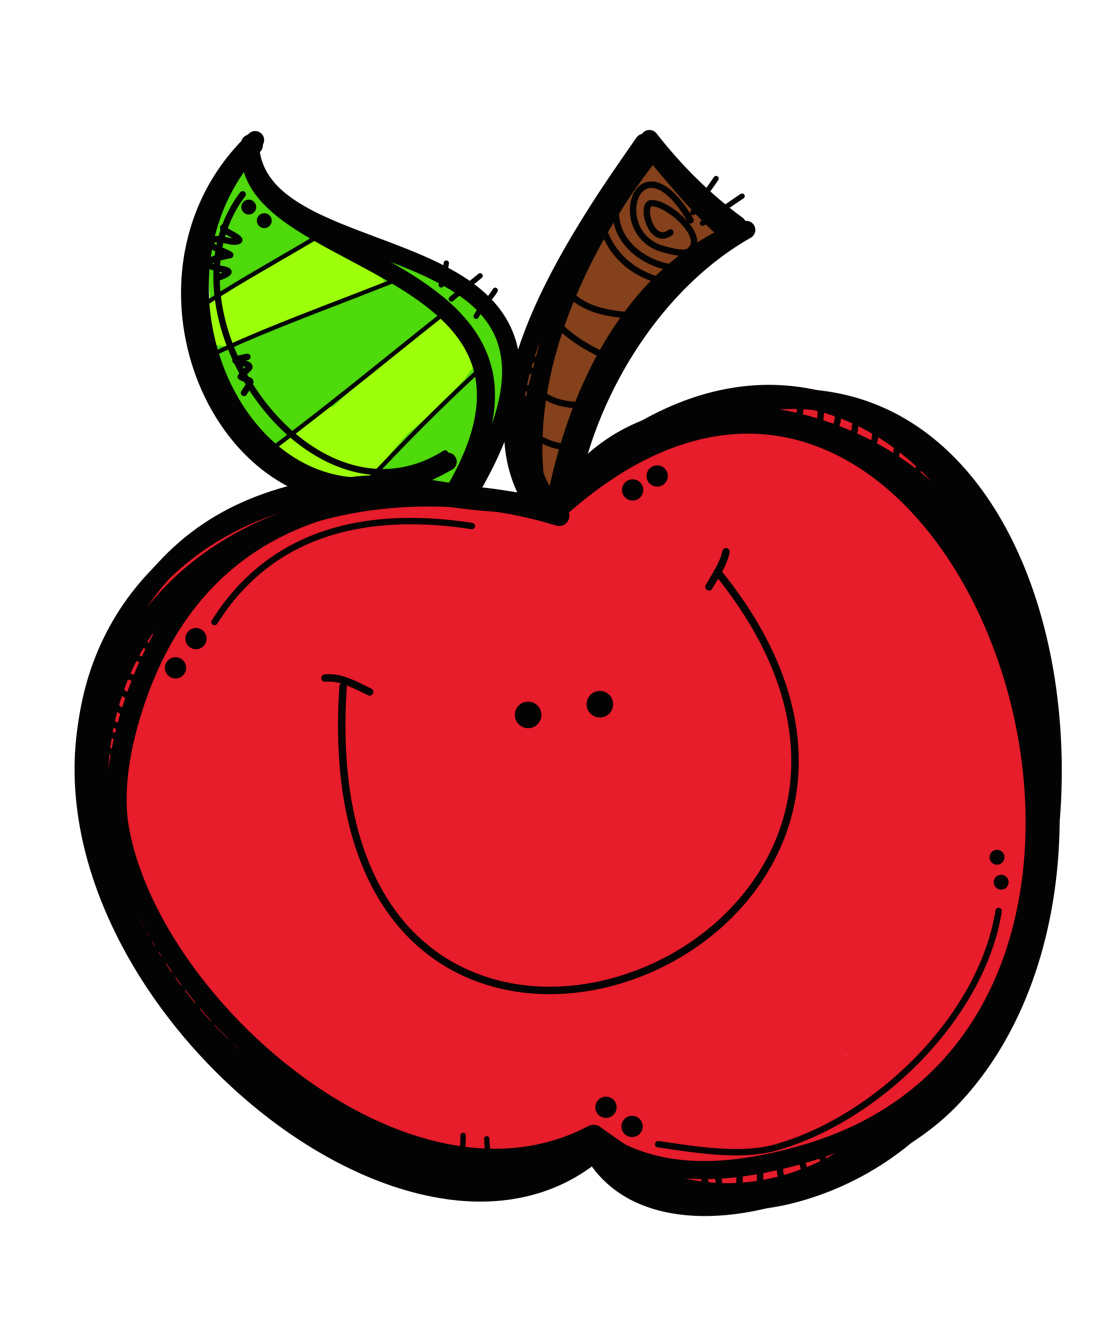 Counseling clipart happy. Cute apple clip art